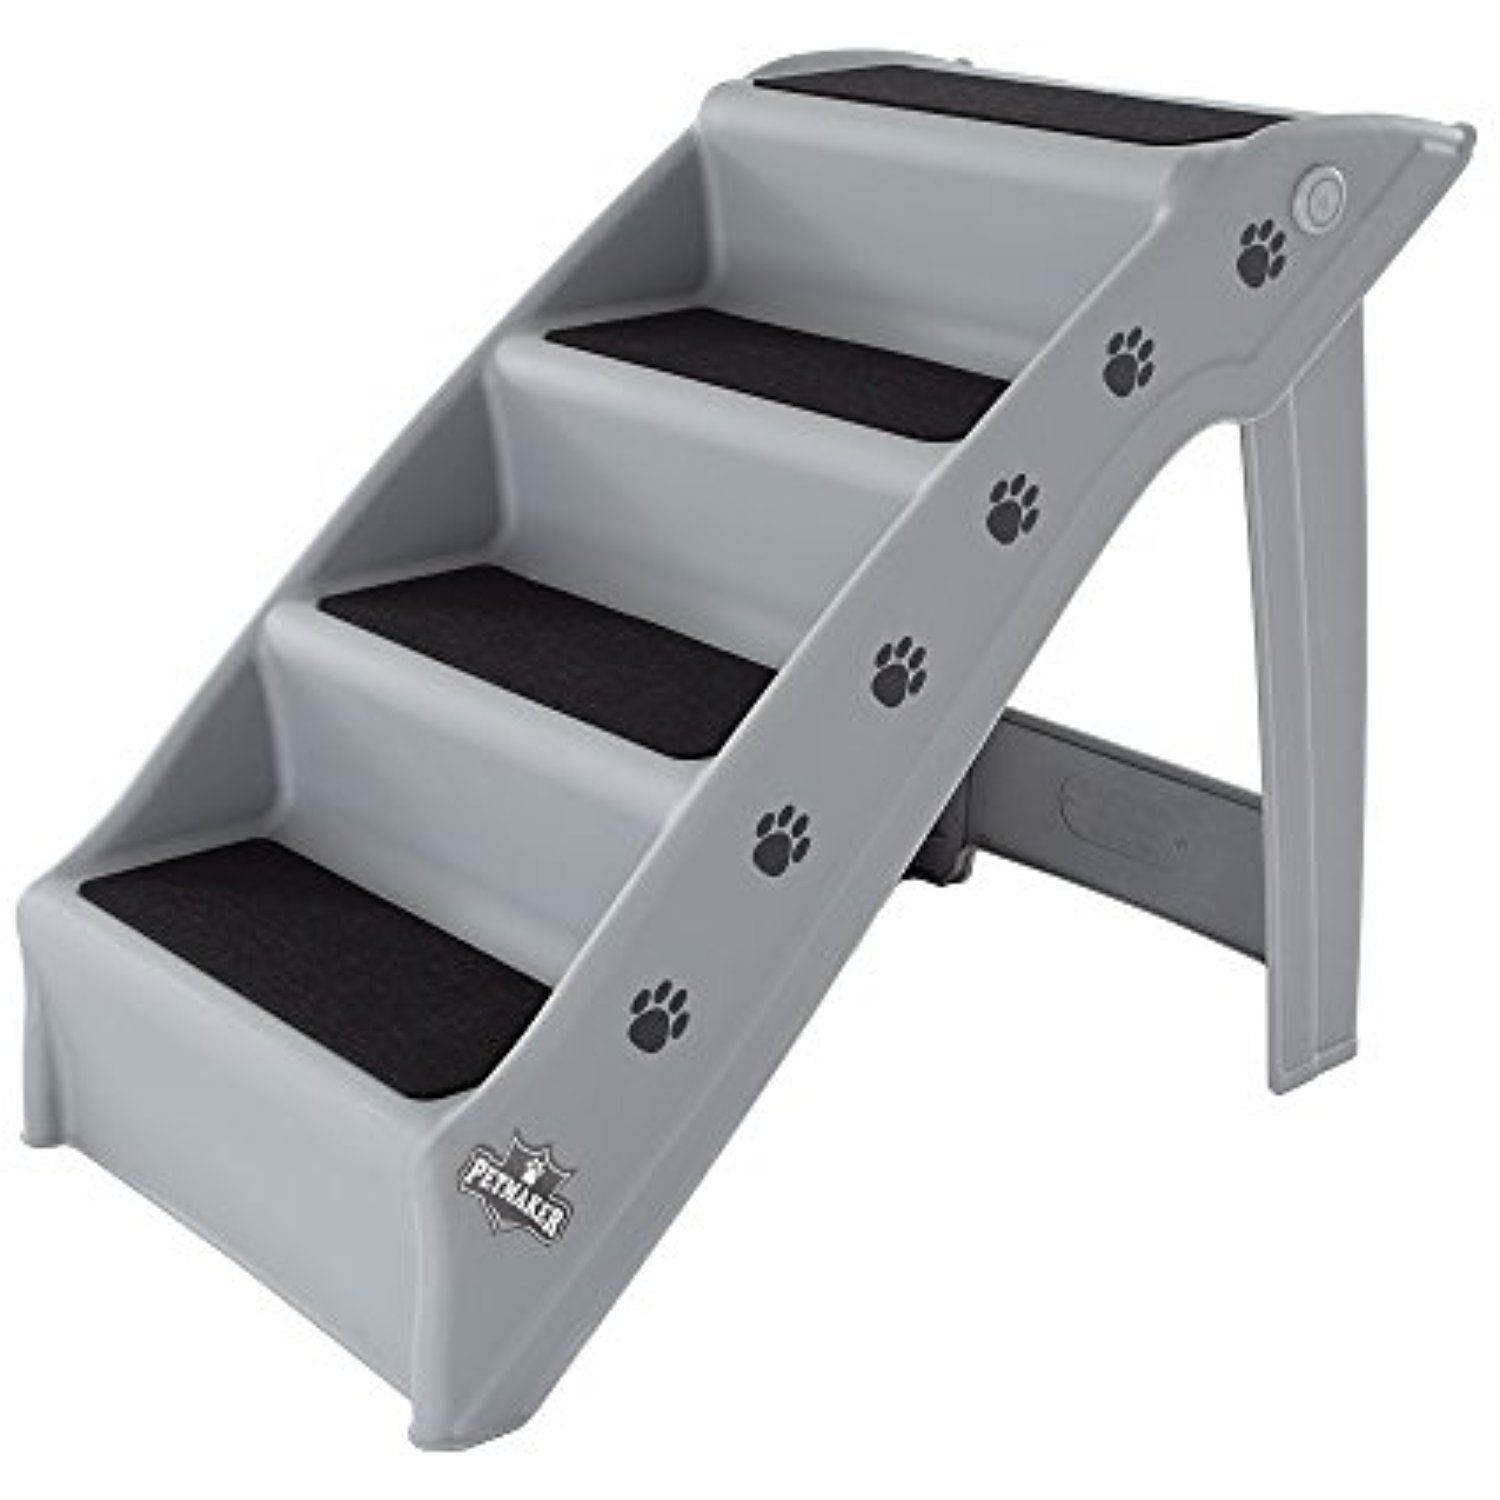 Petmaker 80 Pet6017 The Folding Plastic Pet Stairs Read More At The Image Link This Is An Affiliate Link Cats Pet Stairs Steps Design Dog Steps